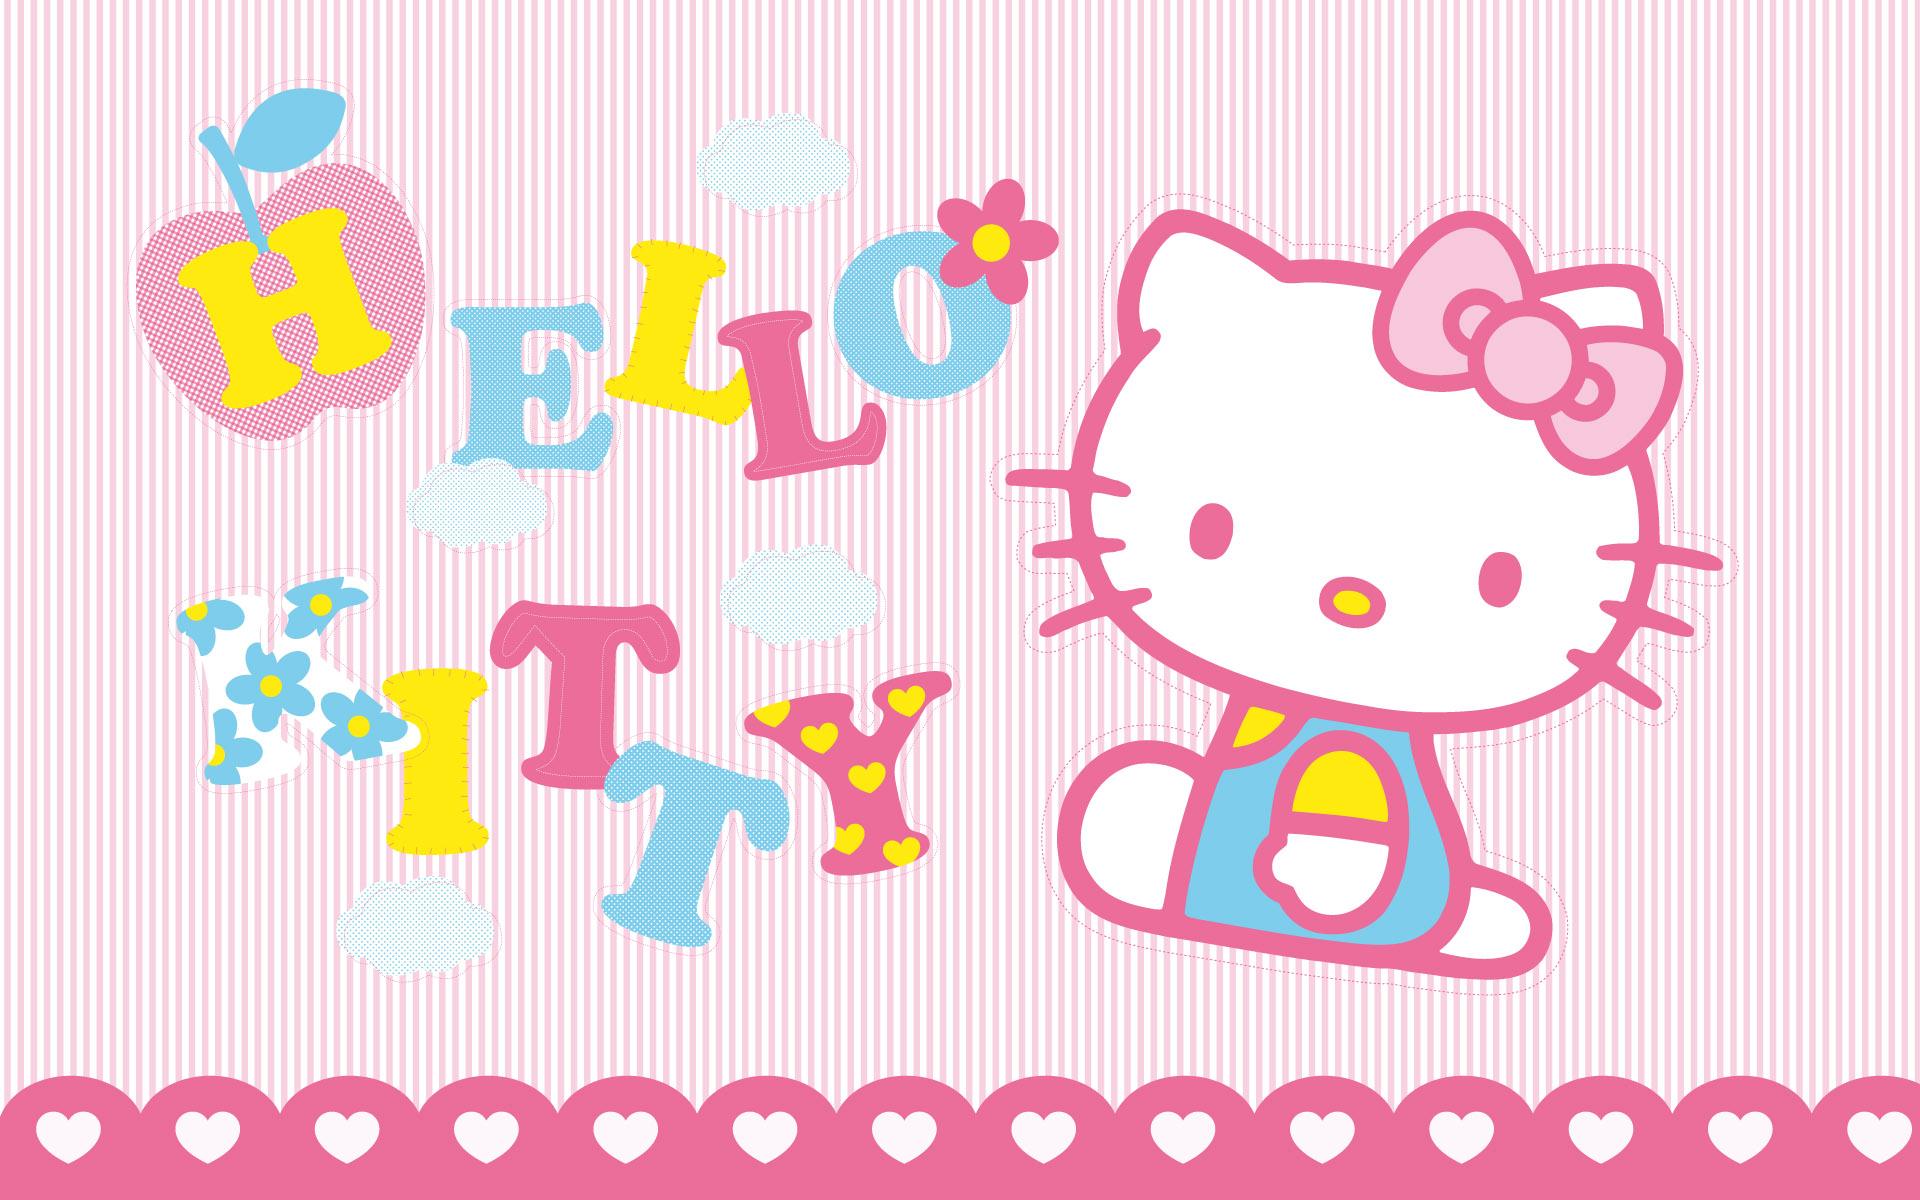 Hello kitty images hello kitty hd wallpaper and background - Anime Hello Kitty Wallpaper